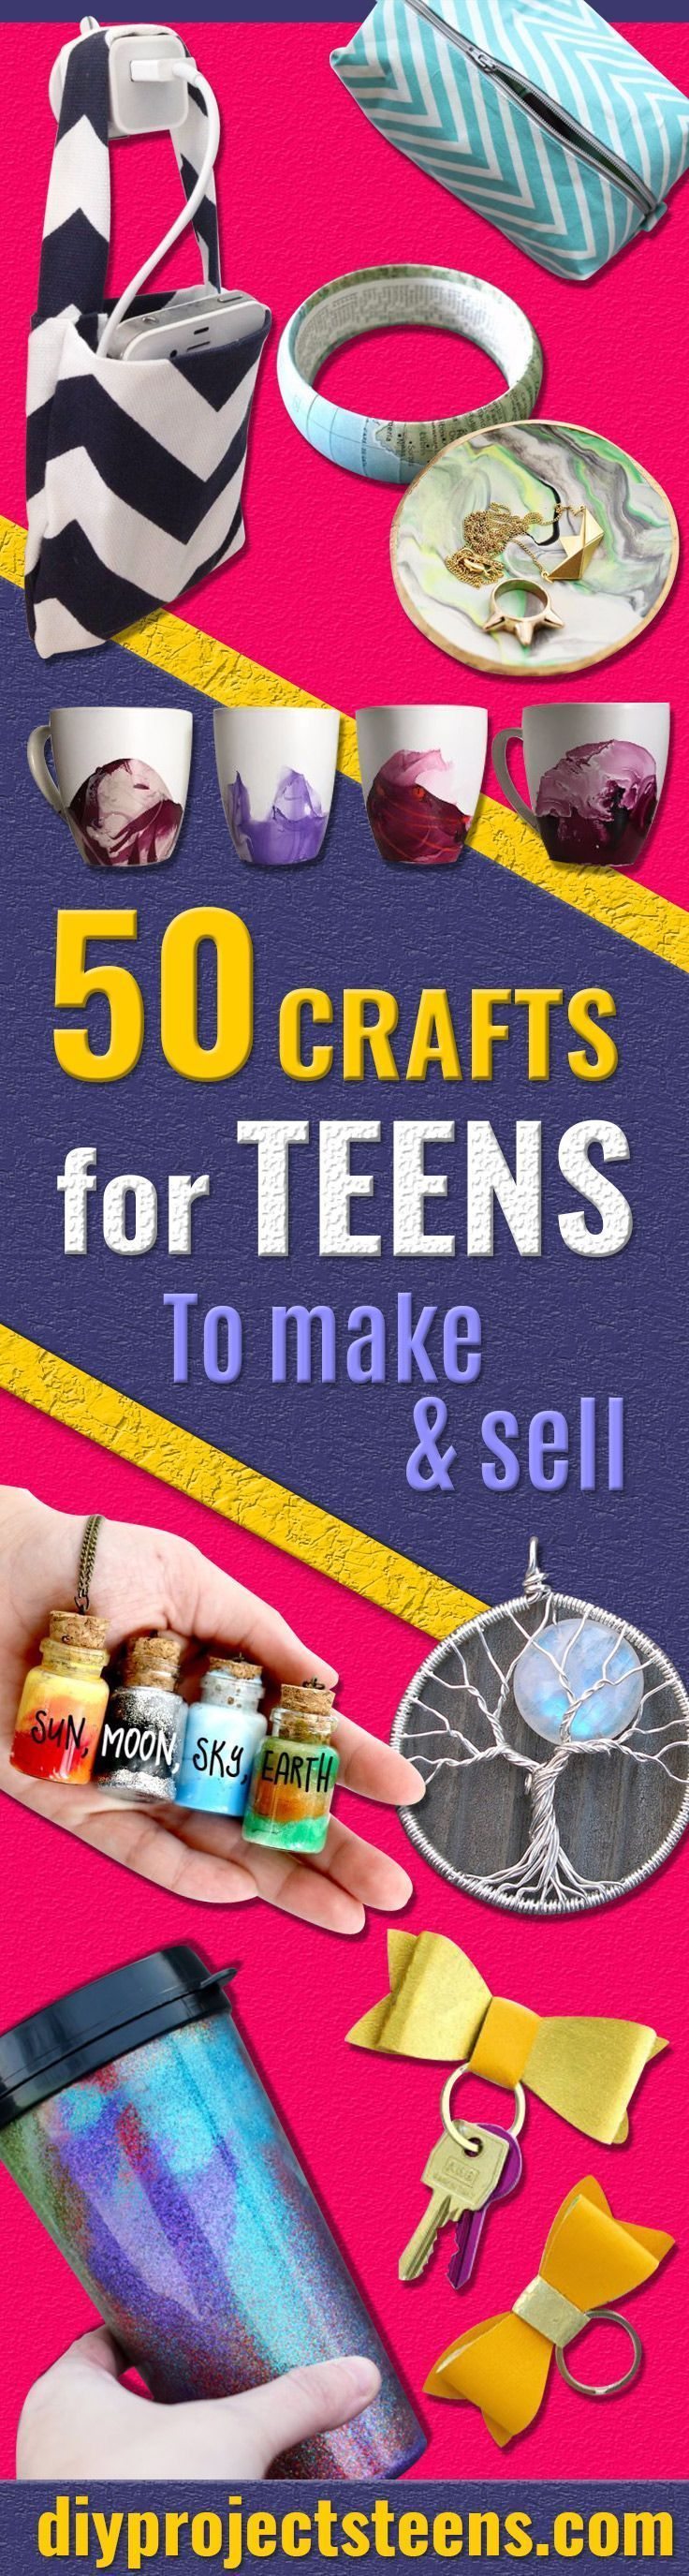 crafts for teens to make and sell project ideas diy ideas and teen